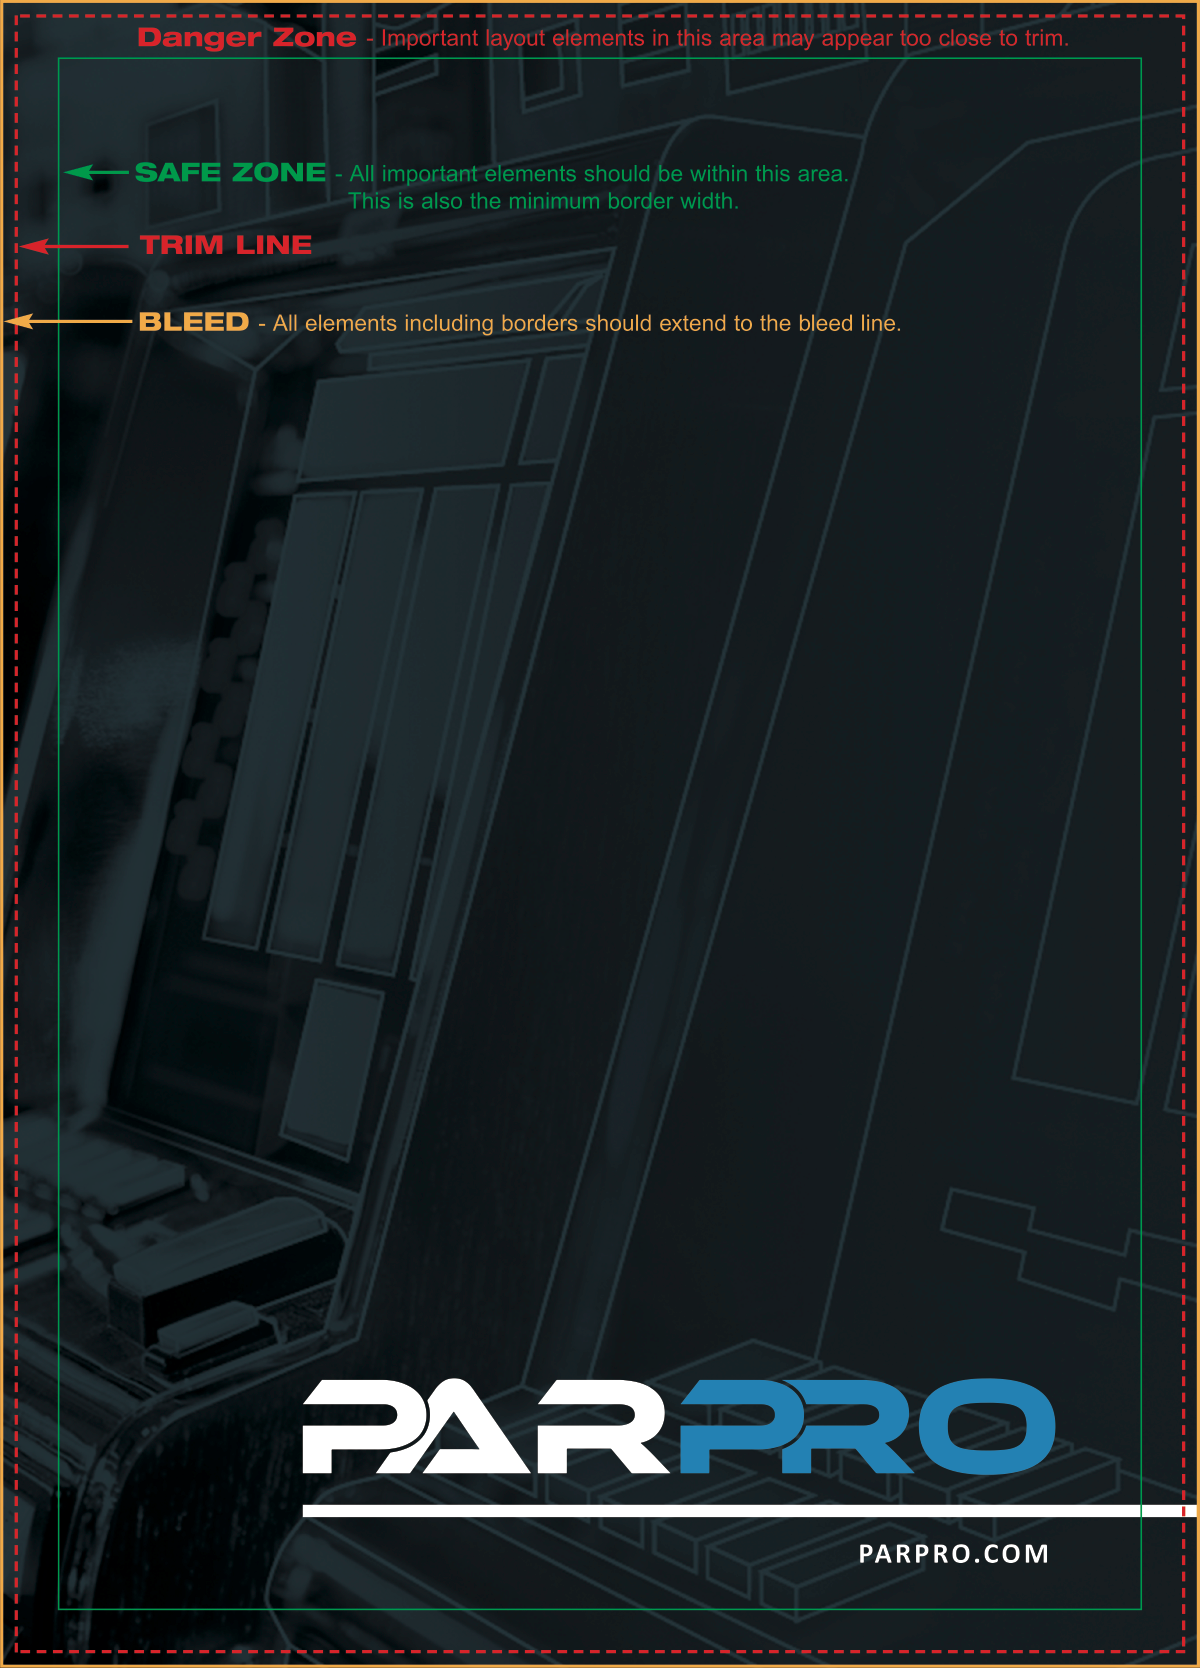 PARPRO G2E Invitation